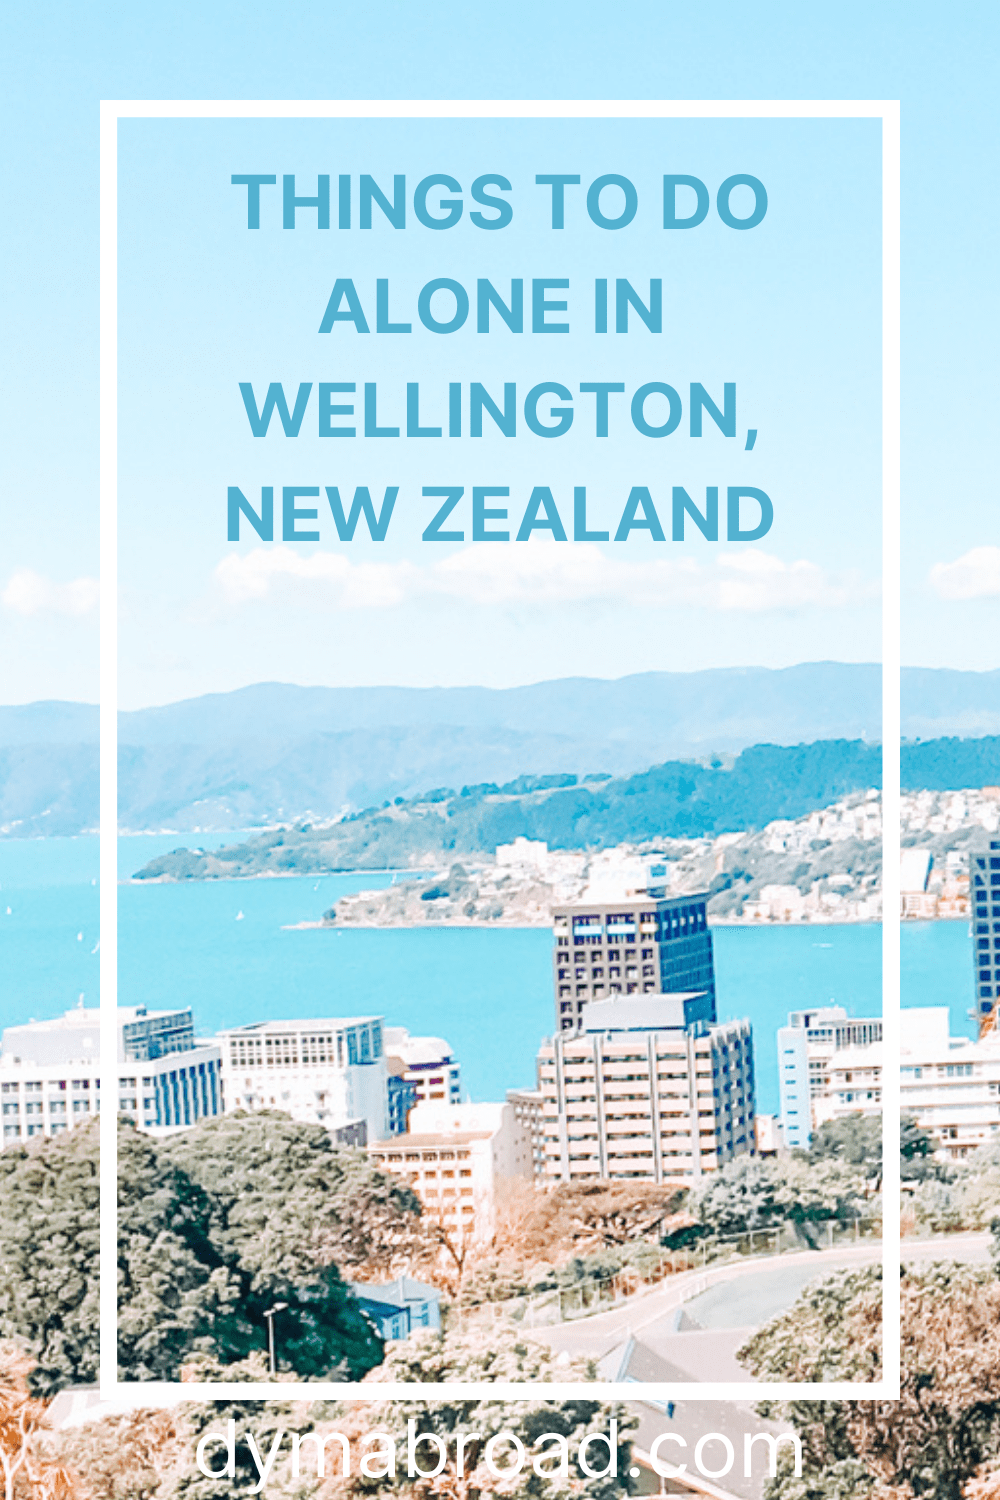 Things to do alone in Wellington Pinterest image